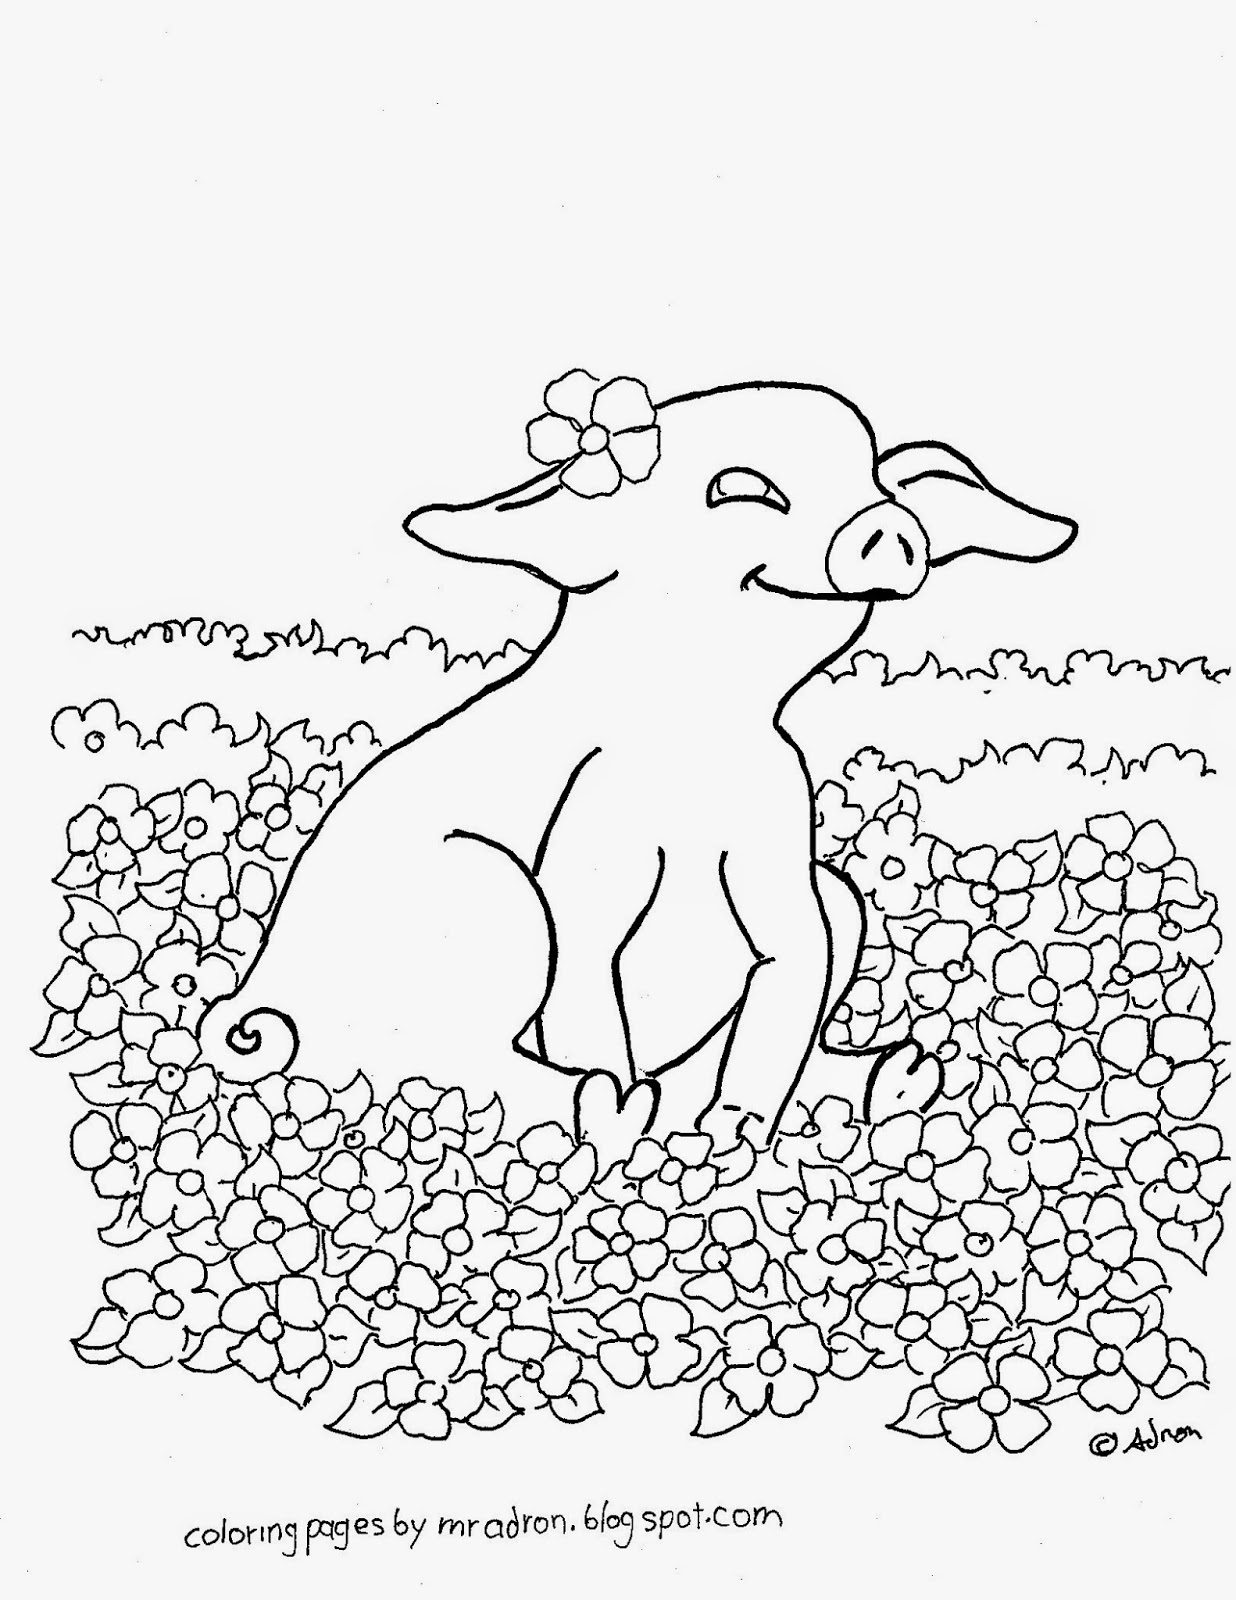 coloring pictures of pigs top 10 free printable three little pigs coloring pages online of pigs pictures coloring